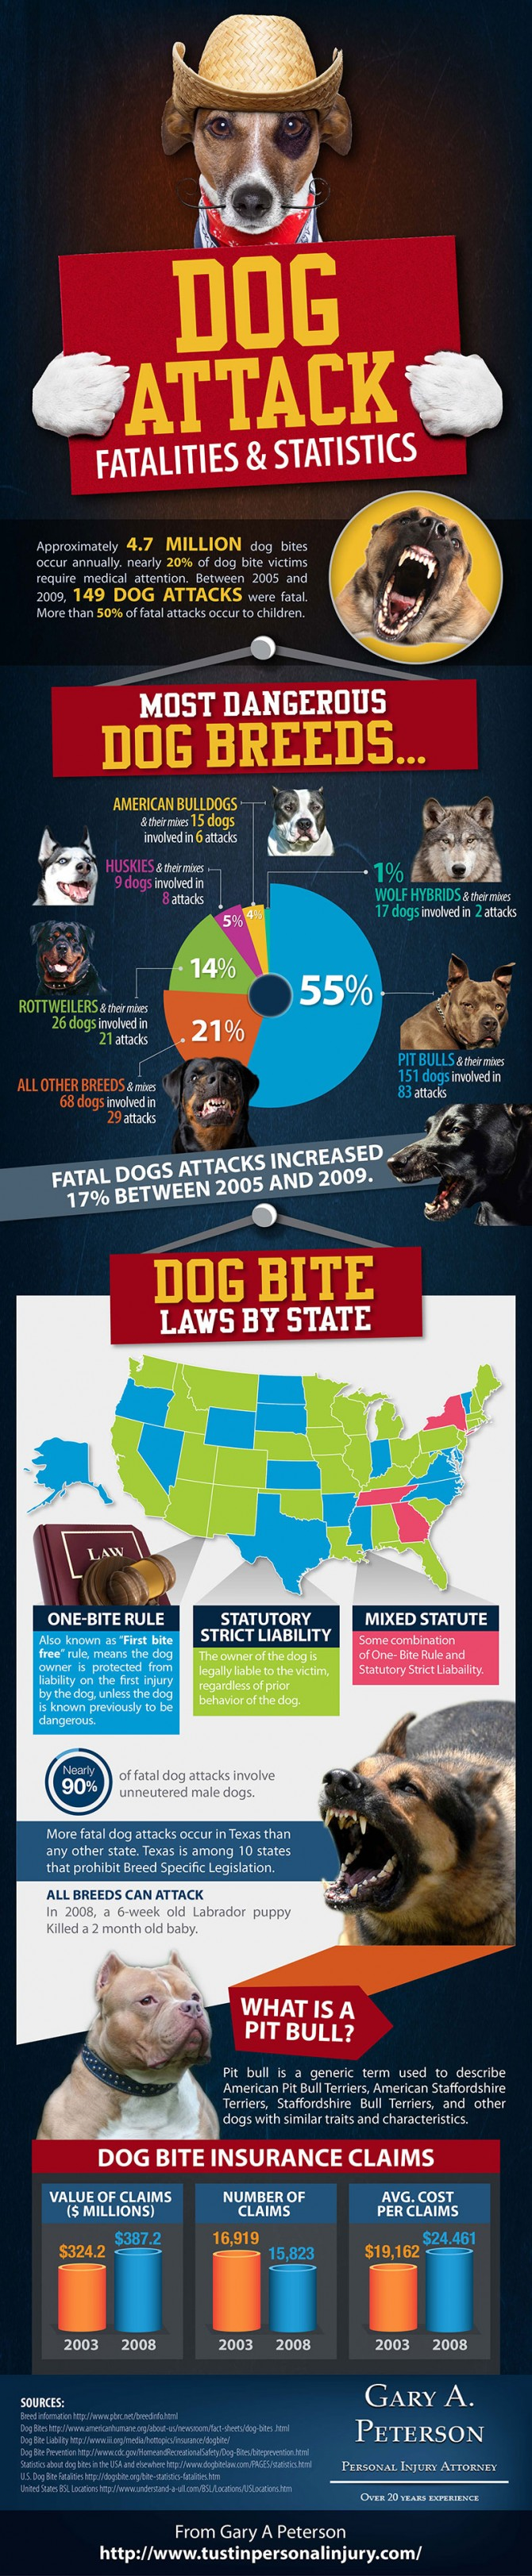 Dog-Attack-Fatalities-Statistics-Infographic-670x3246